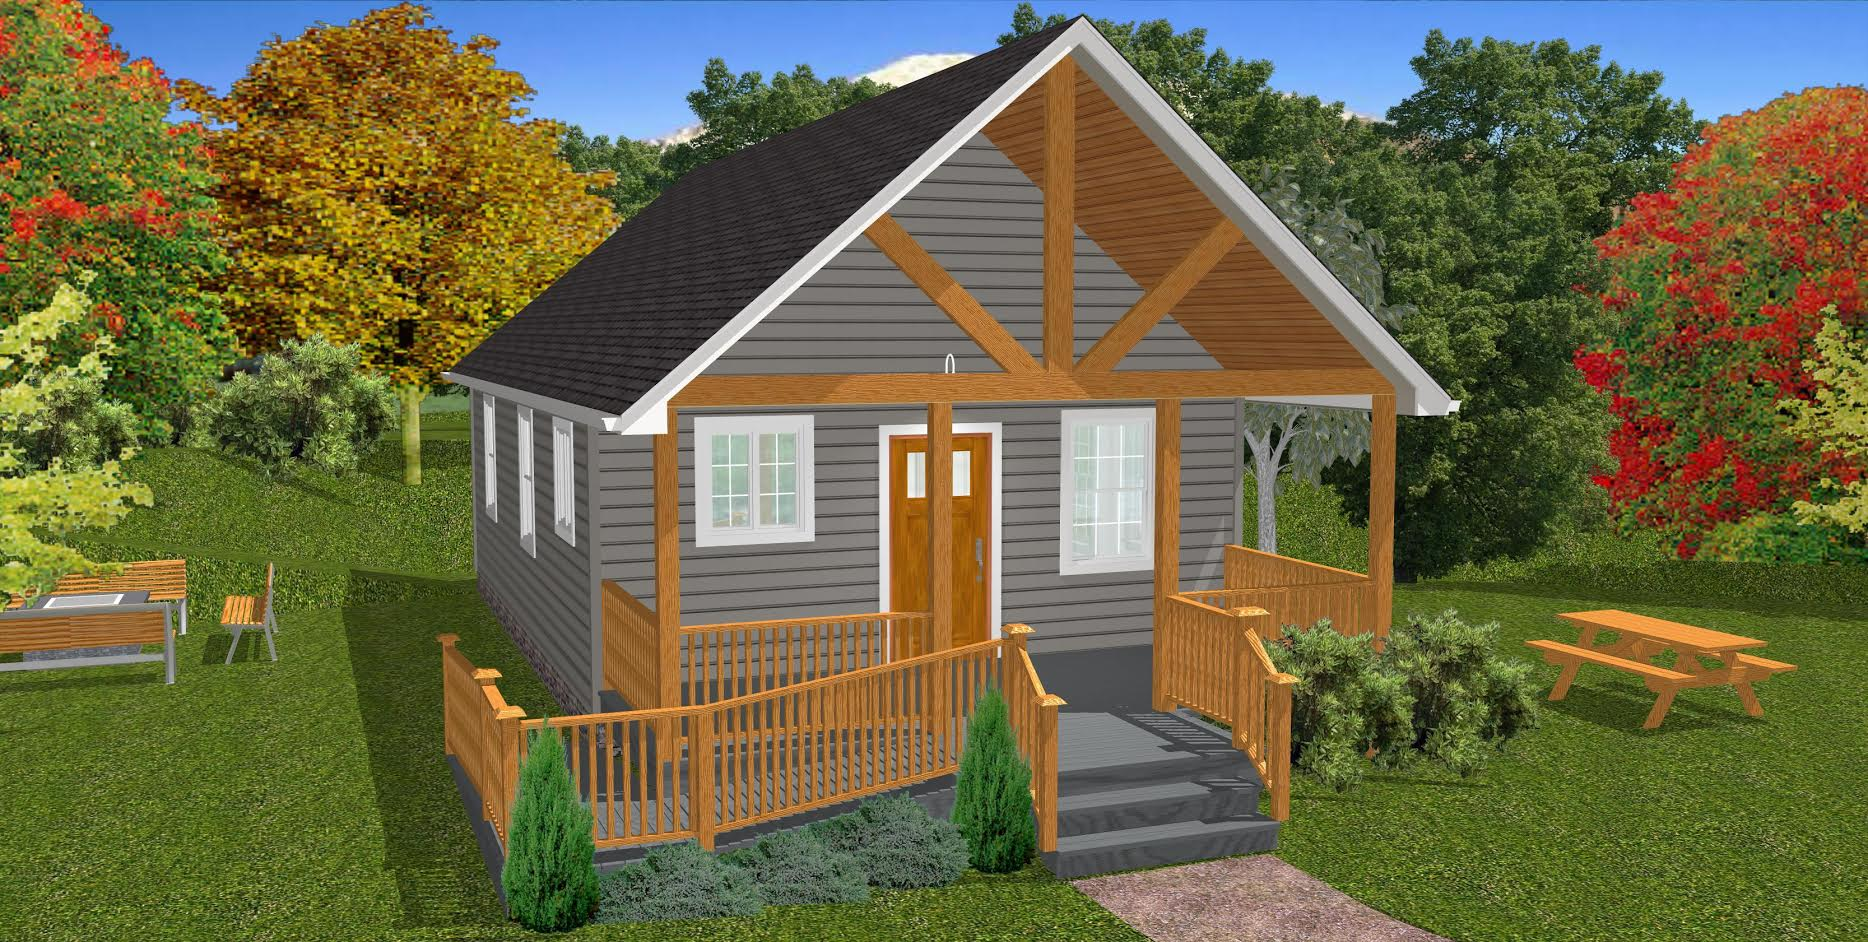 The oasis 600 sq ft wheelchair friendly home plans for Handicap accessible homes